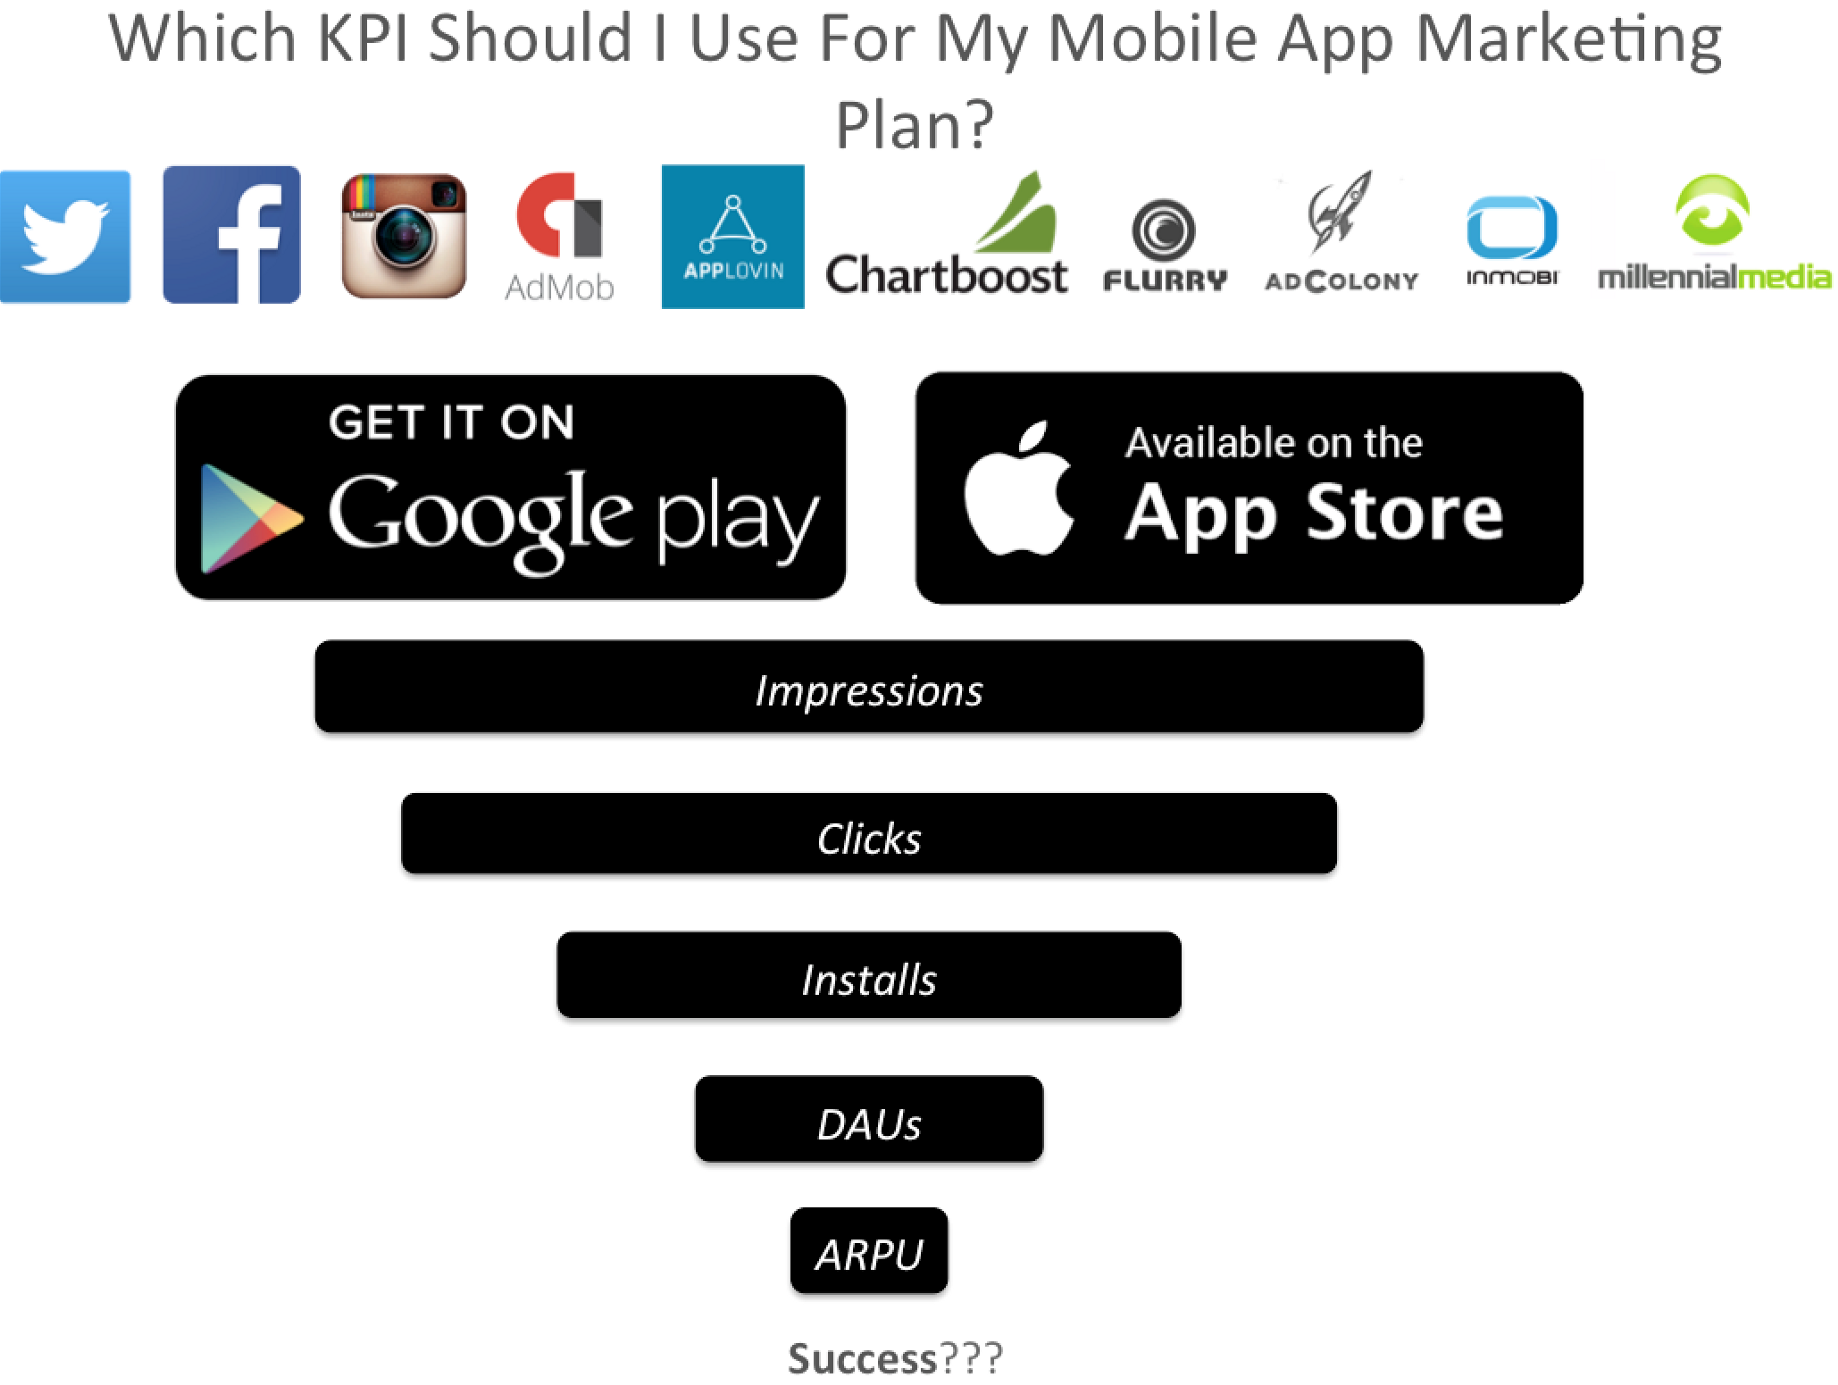 Which KPI Should I Use For My Mobile App Marketing Plan?